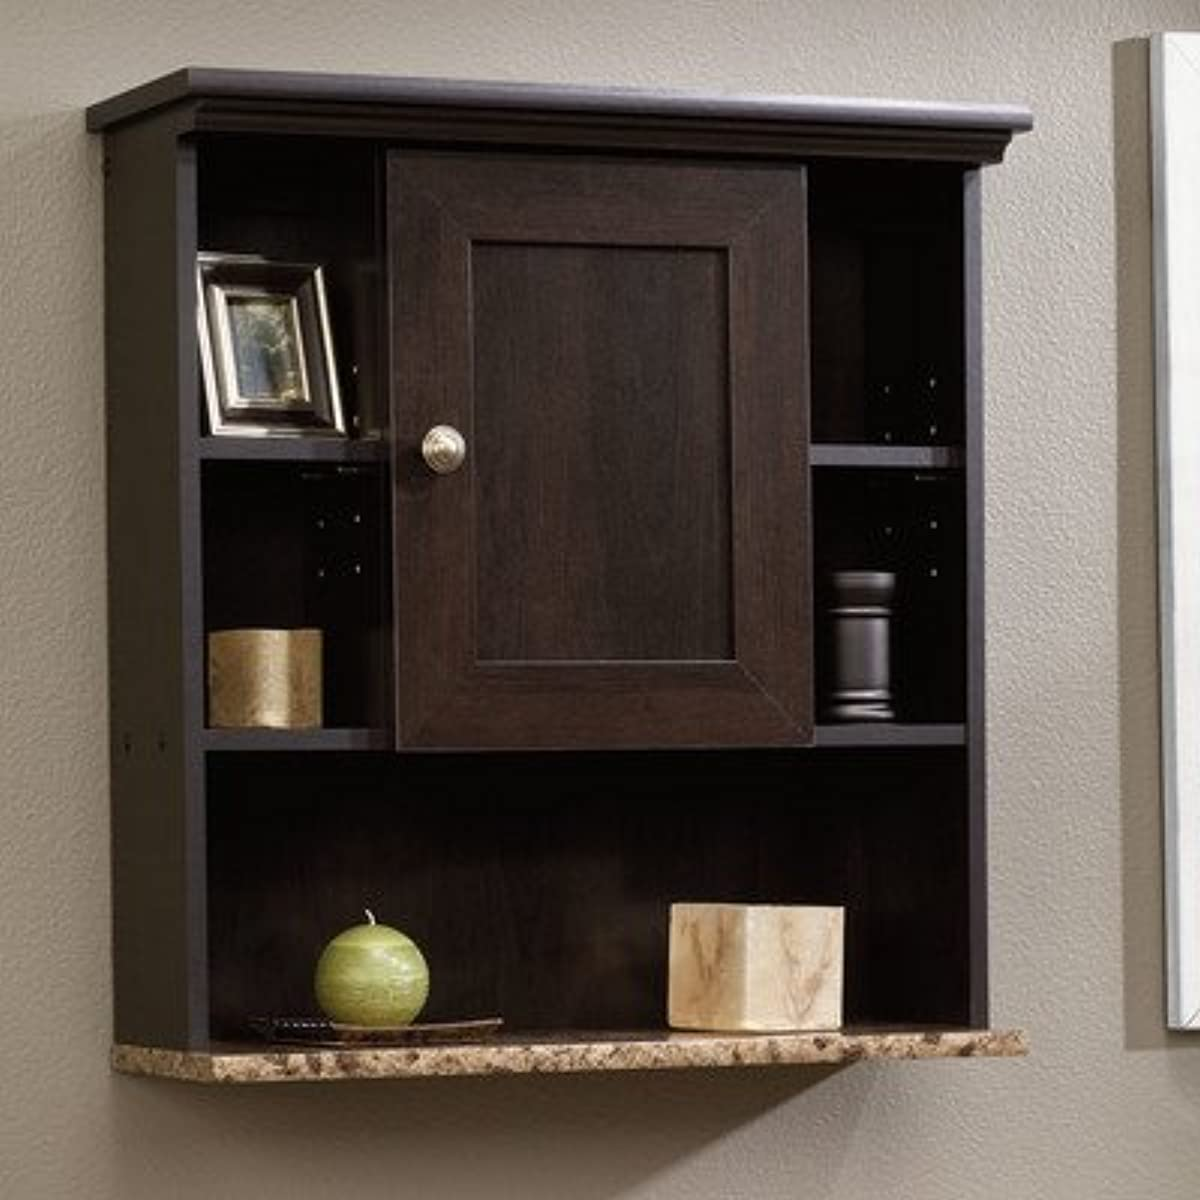 Details About Brown Wooden Over Toilet Cabinet Organizer Storage Shelves Bathroom Wall Mount